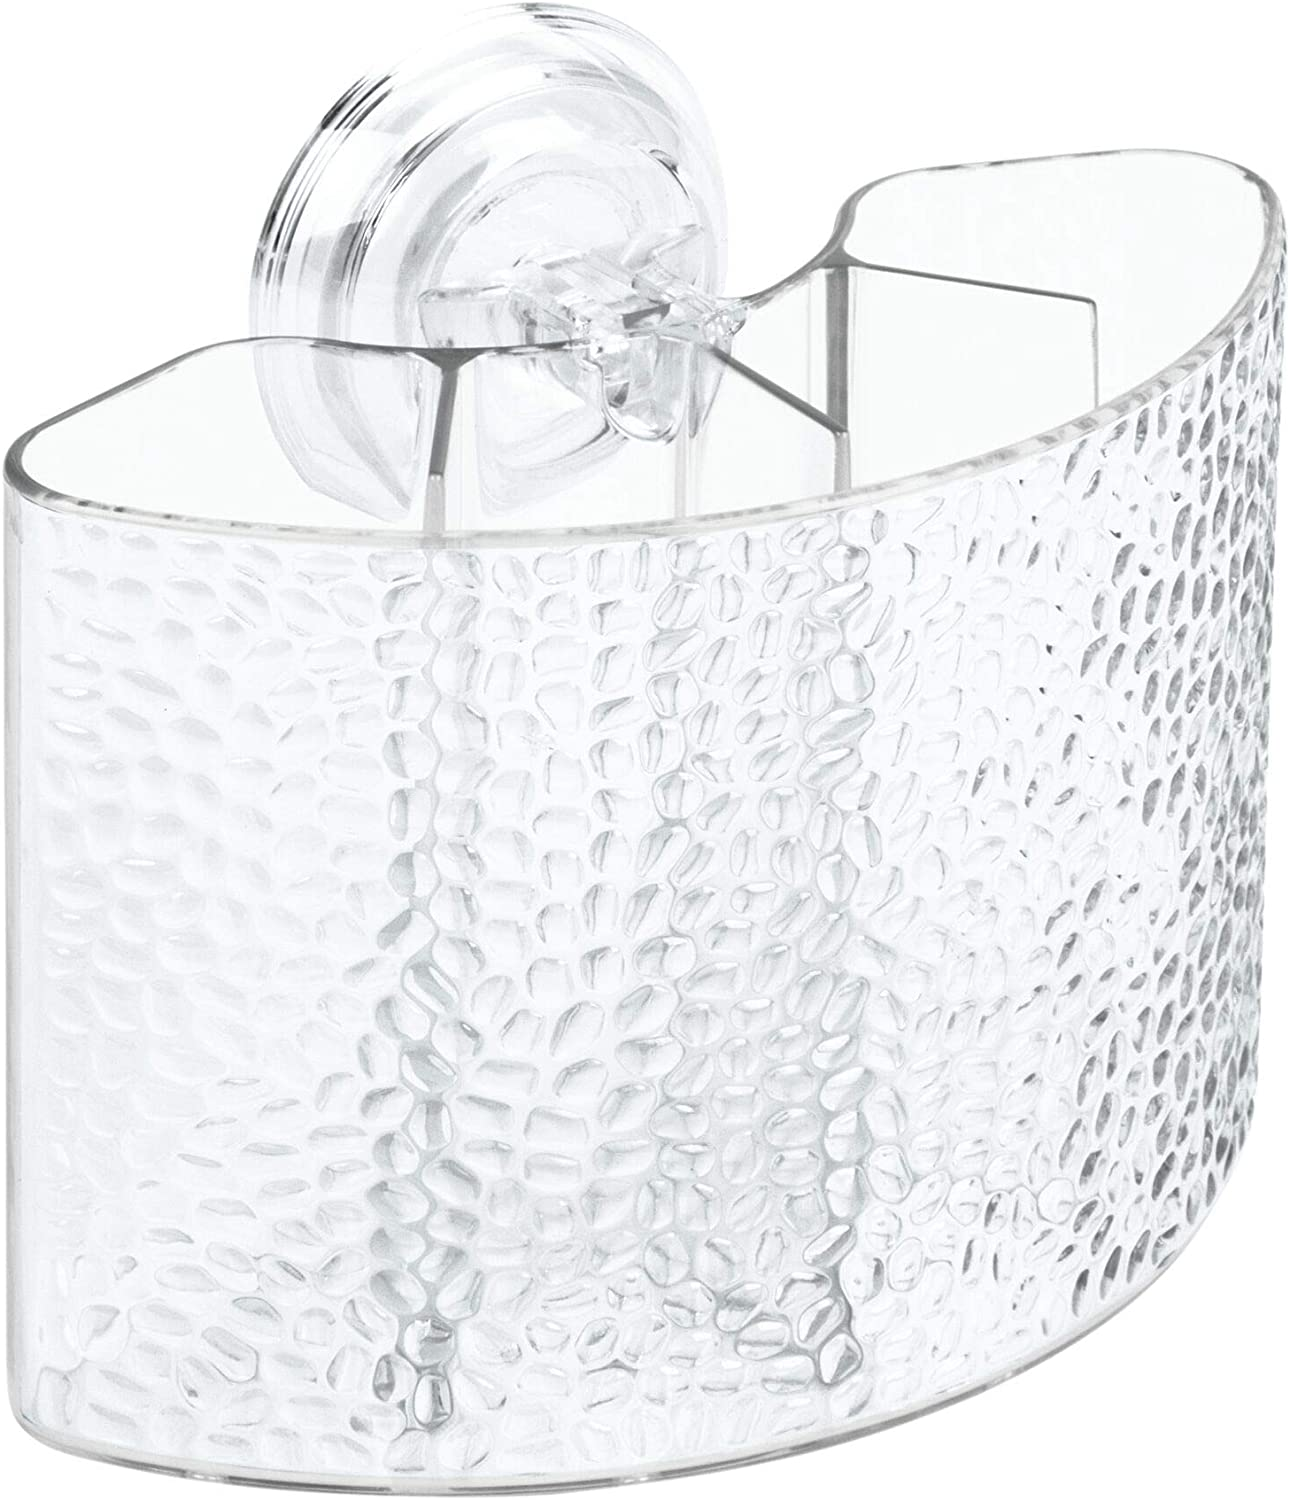 iDesign EMW6200885 1 x Holder Soap Dish